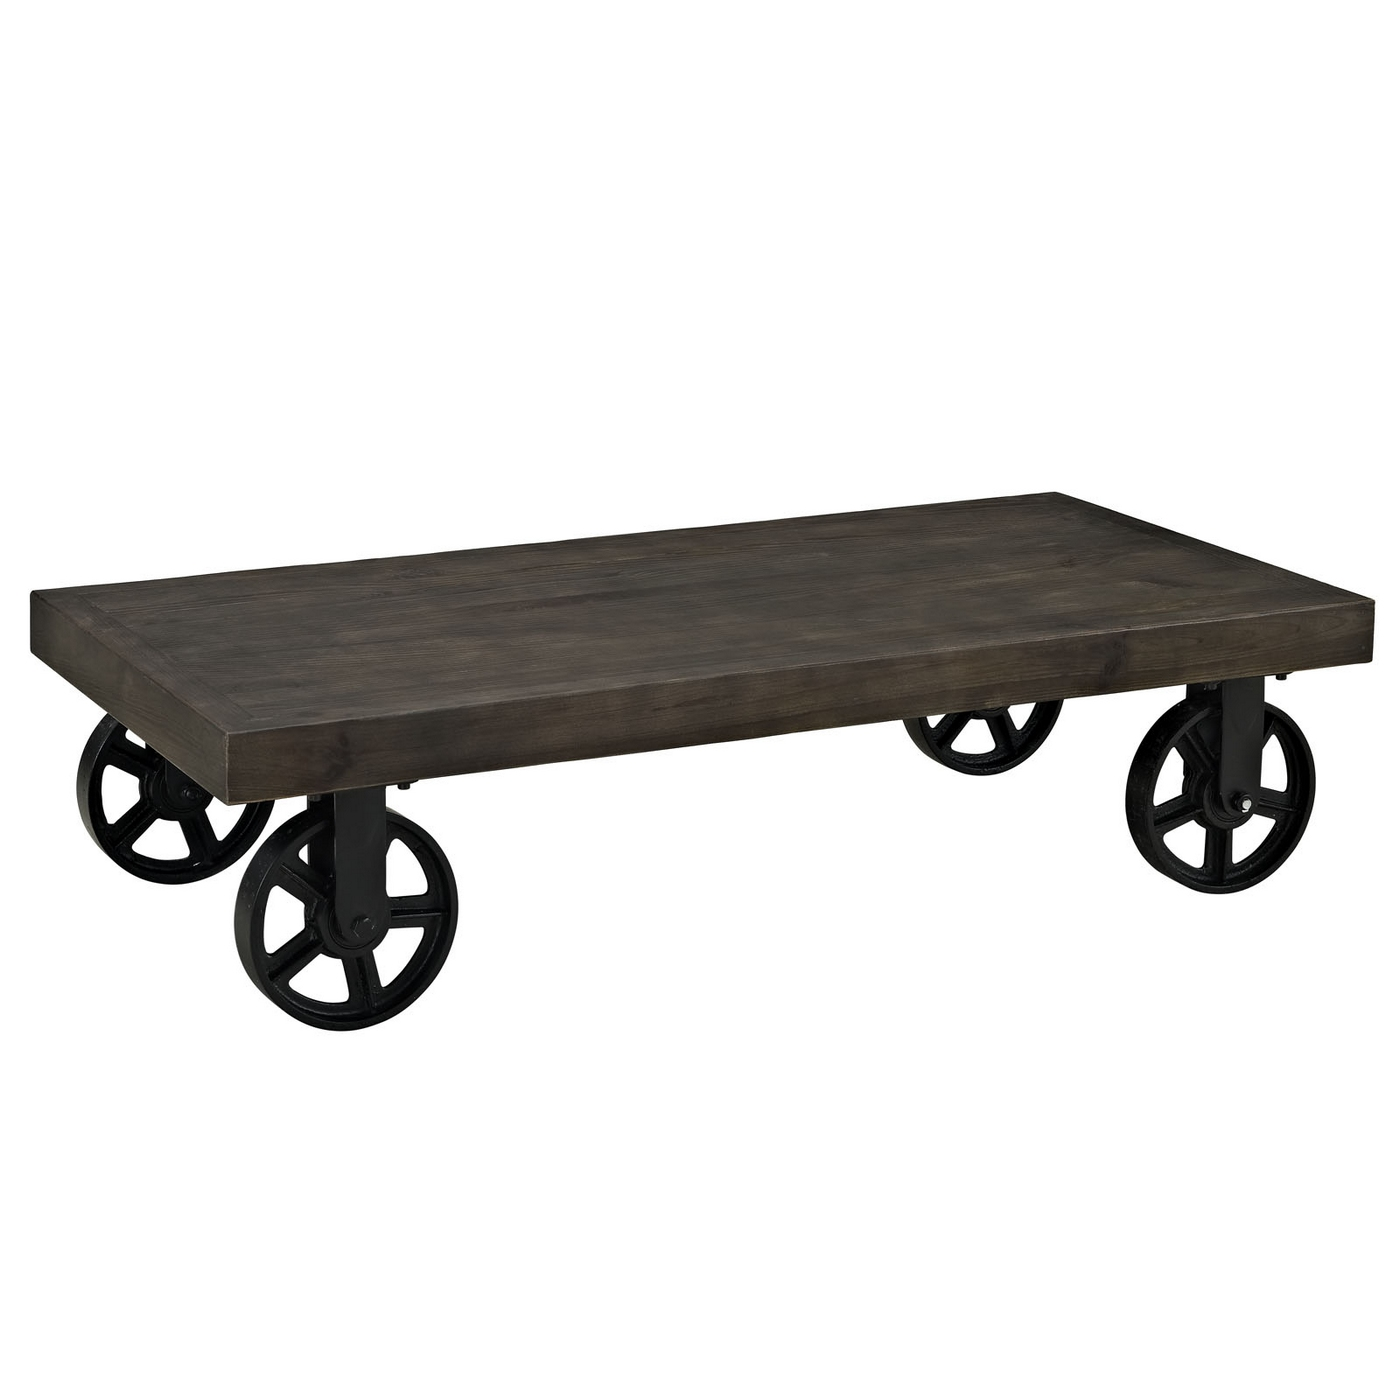 Industrial Casters For Coffee Table: Garrison Industrial Solid Pine Wood Coffee Table With